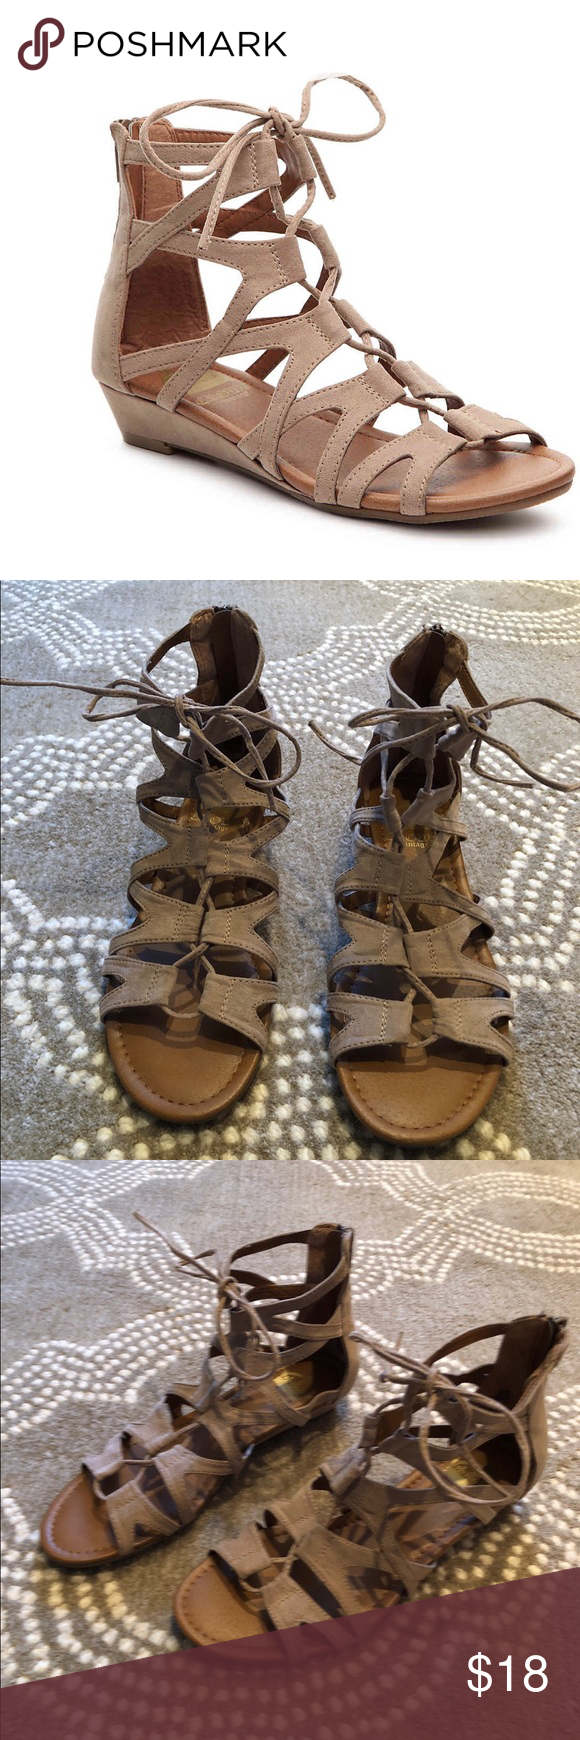 df0f753bafc1 Crown Vintage Gladiator sandals Crown Vintage Sarah Wedge Sandals are in  excellent condition. They are lace up with a back zipper. Taupe faux suede.